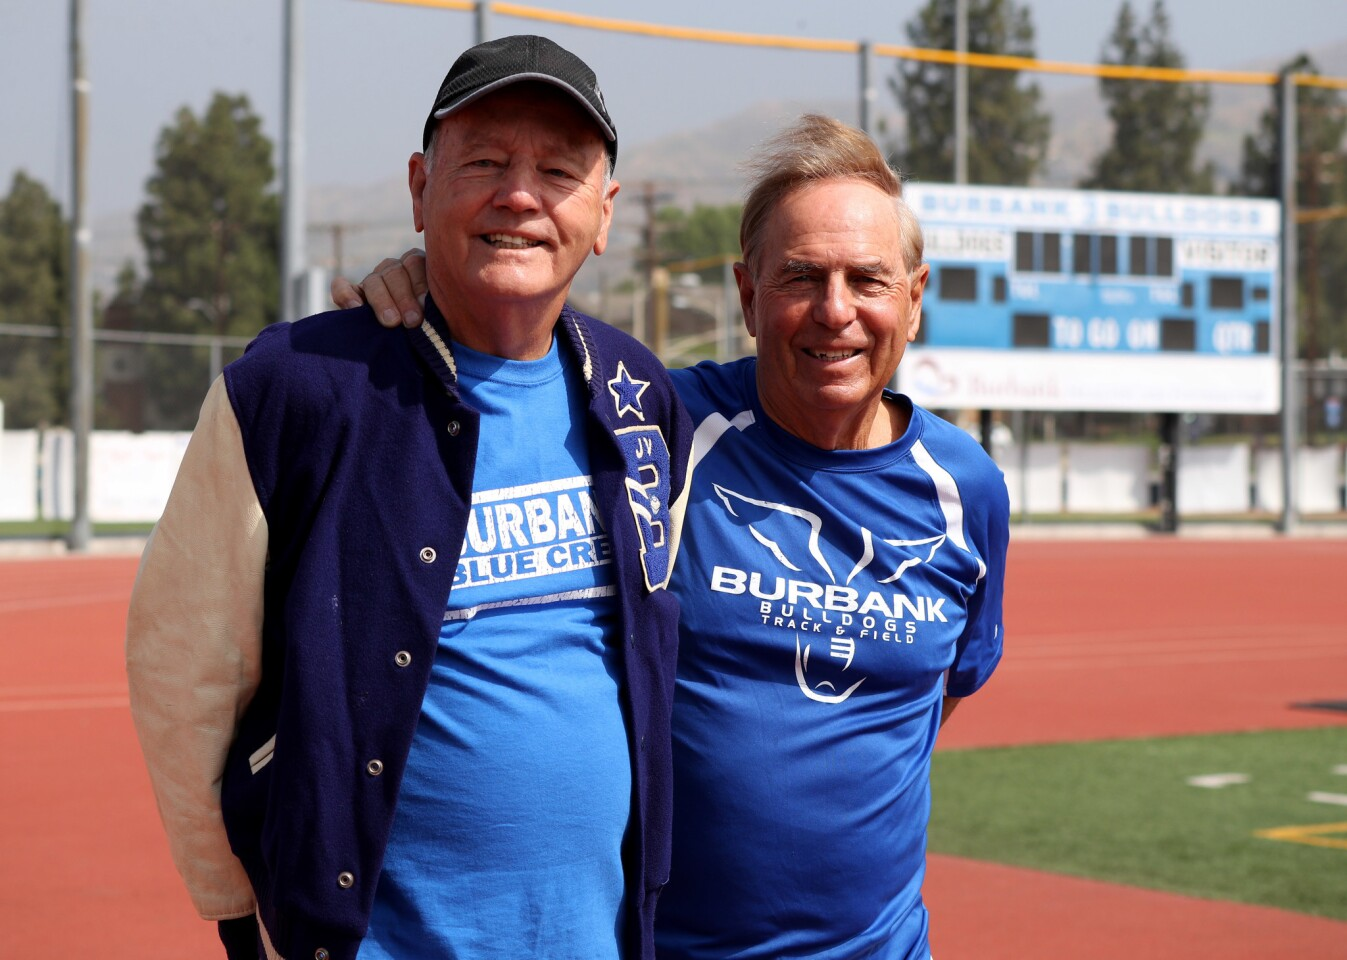 Photo Gallery: Former coaches Kemp, Kallem honored at Burbank High